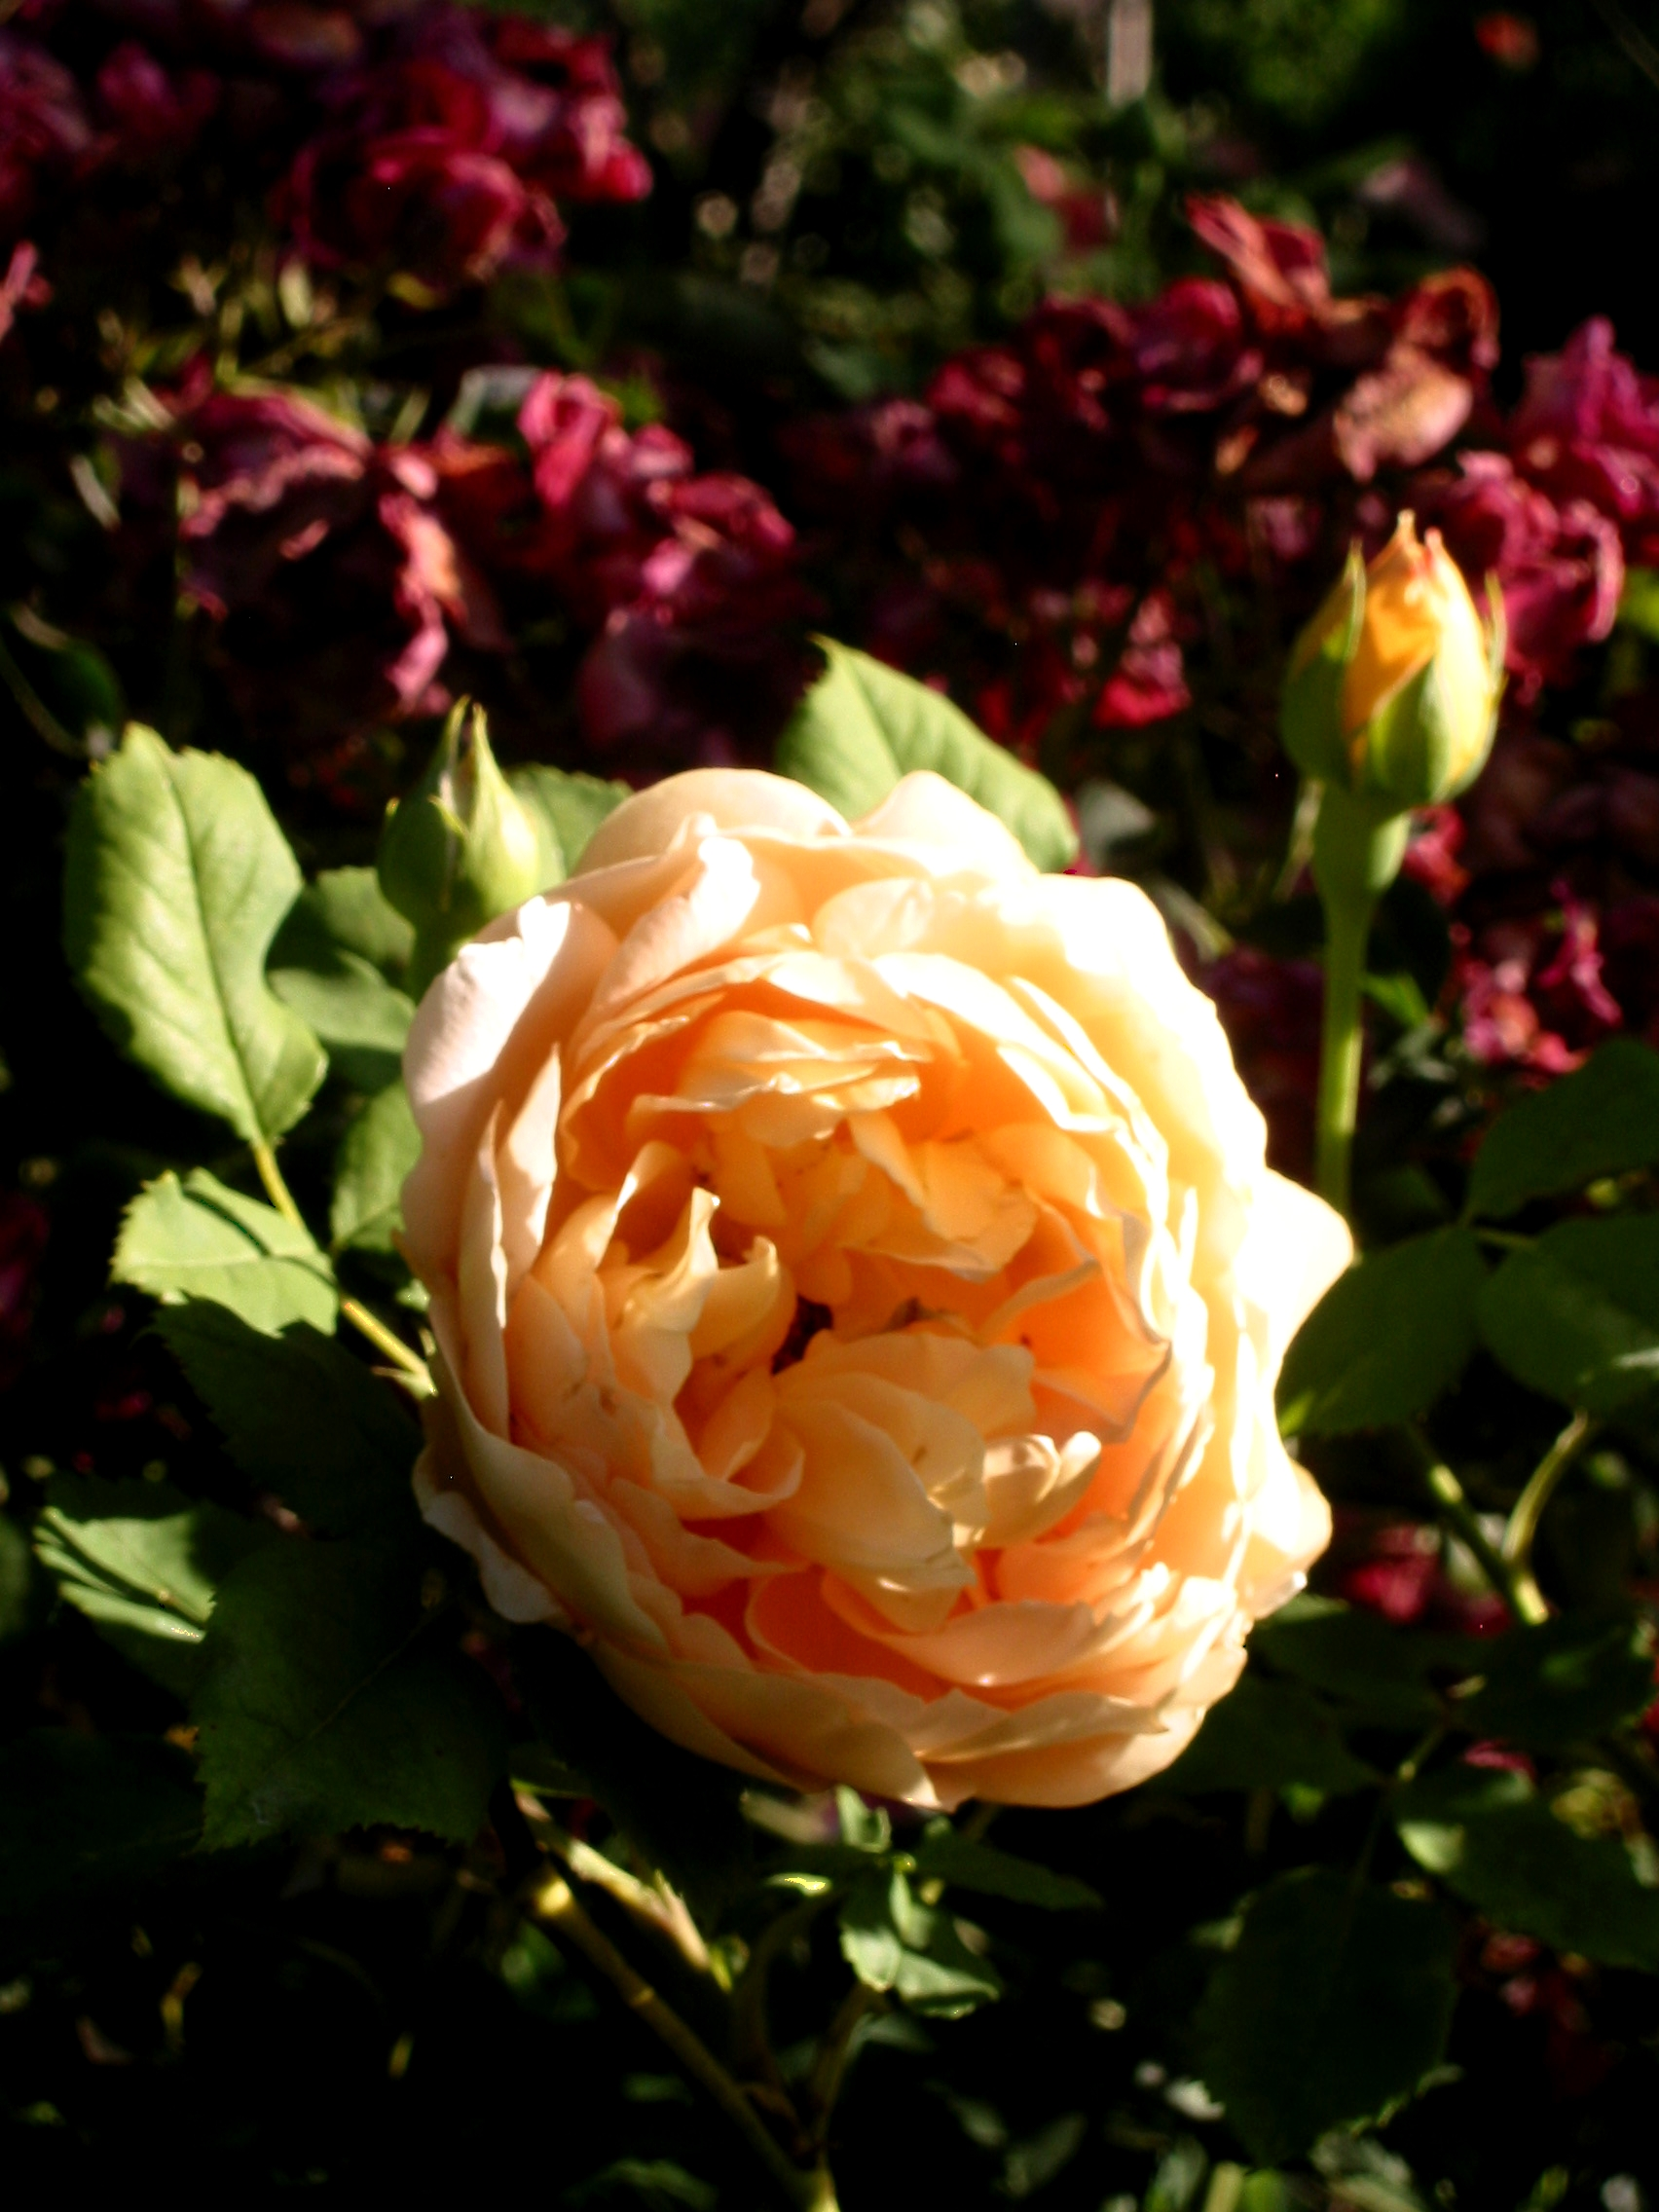 Funny home ownership pictures of roses.